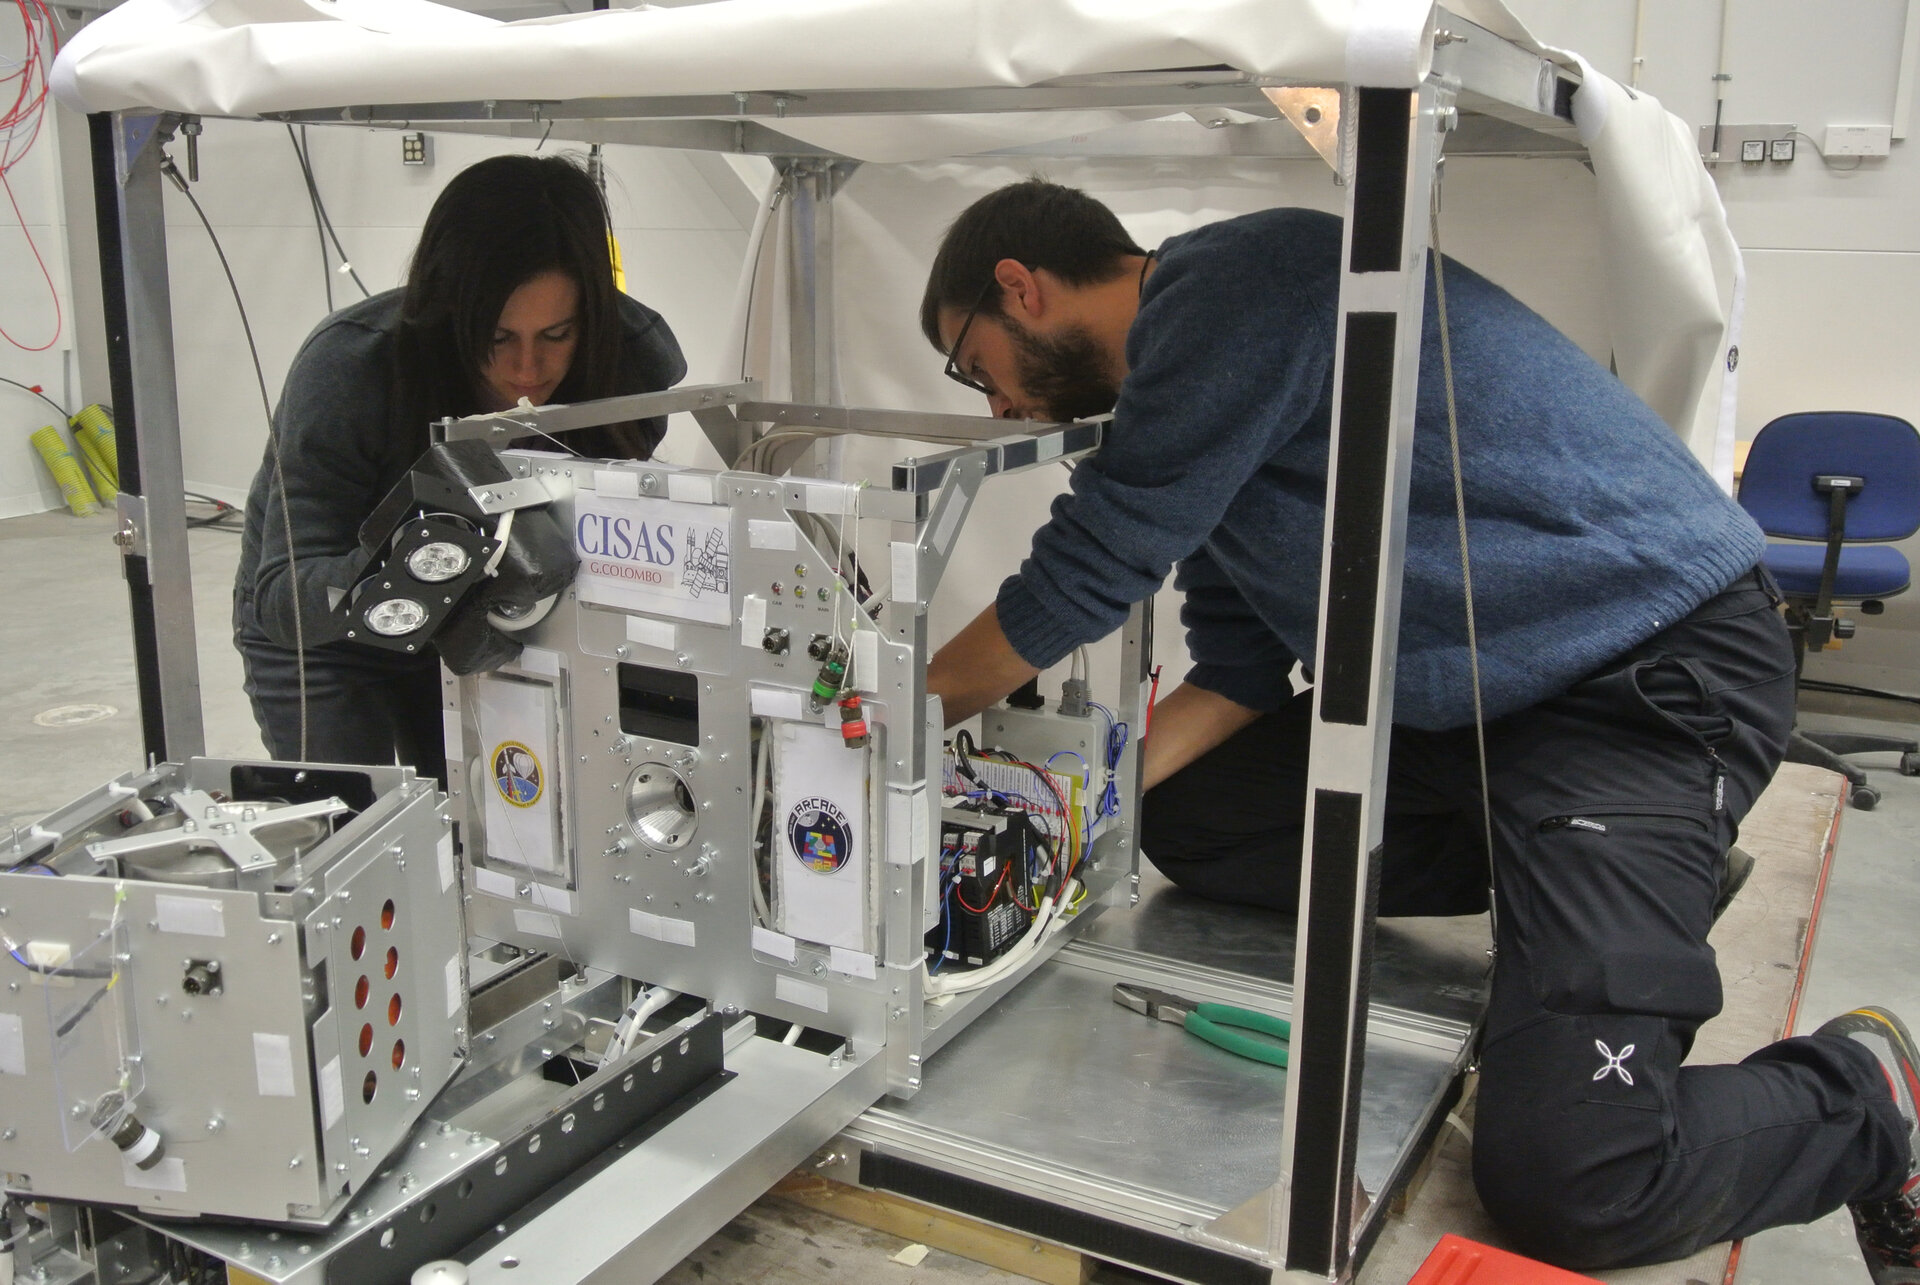 ARCADE-R2 students integrating their experiment in BEXUS 17 gondola